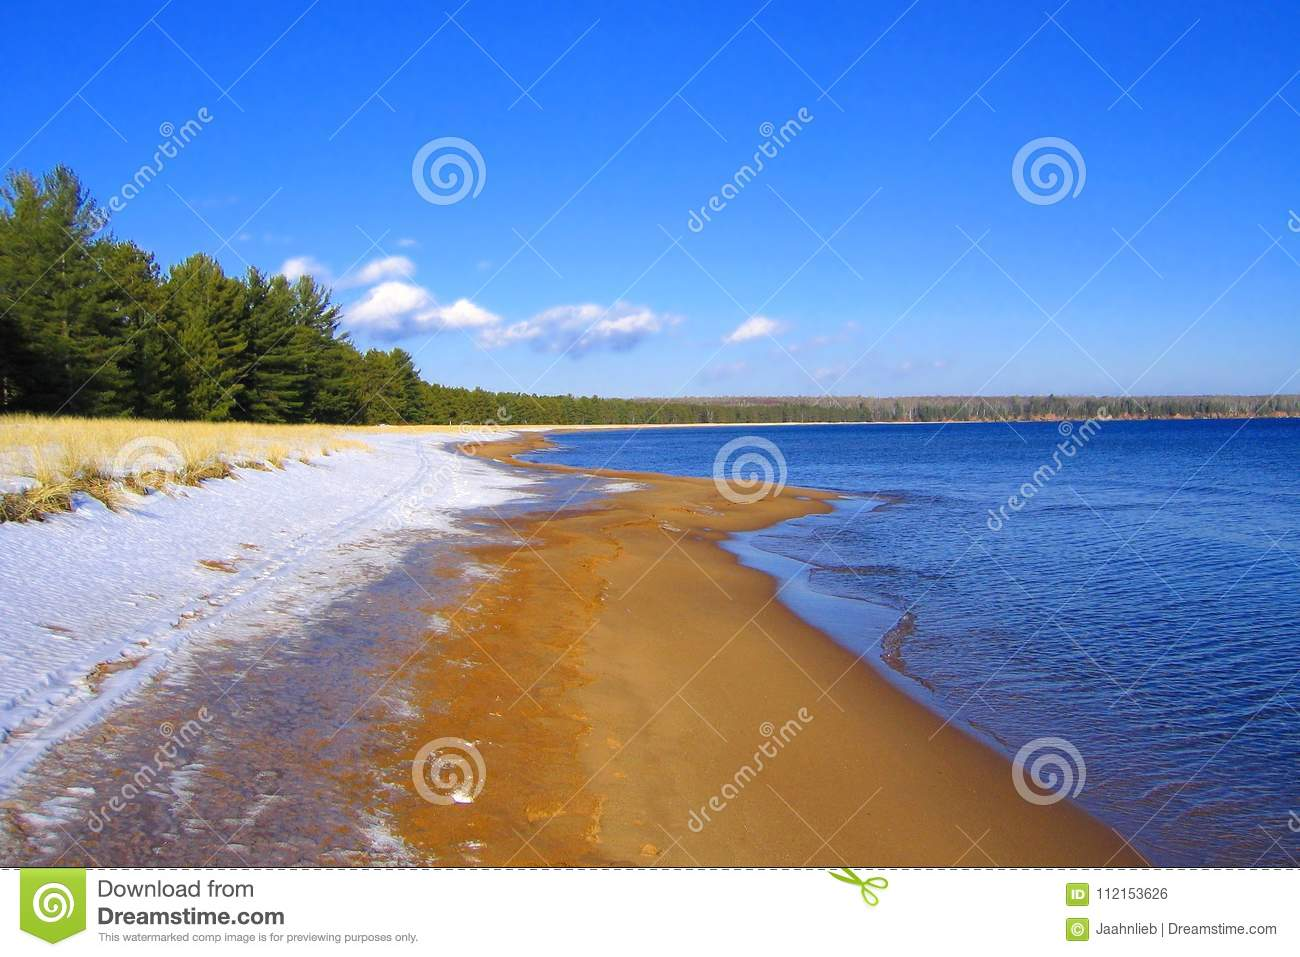 Snow, Sand, and Water, Big Bay State Park, Madeline Island, Apostle Islands, Wisconsin